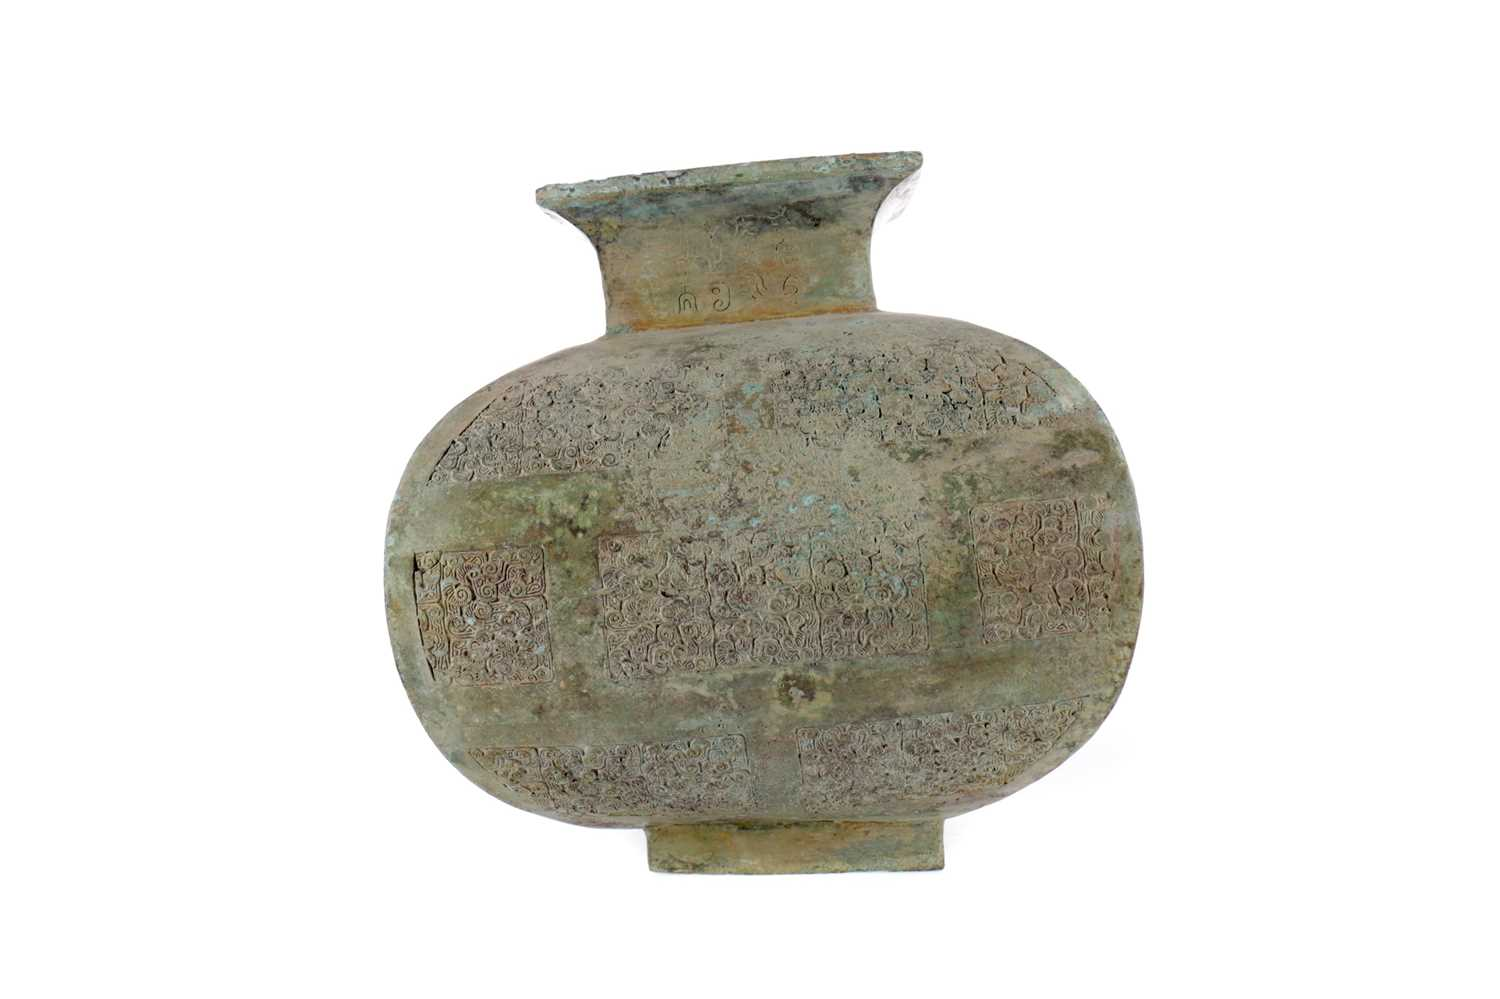 Lot 753 - A 20TH CENTURY CHINESE BRONZE VESSEL